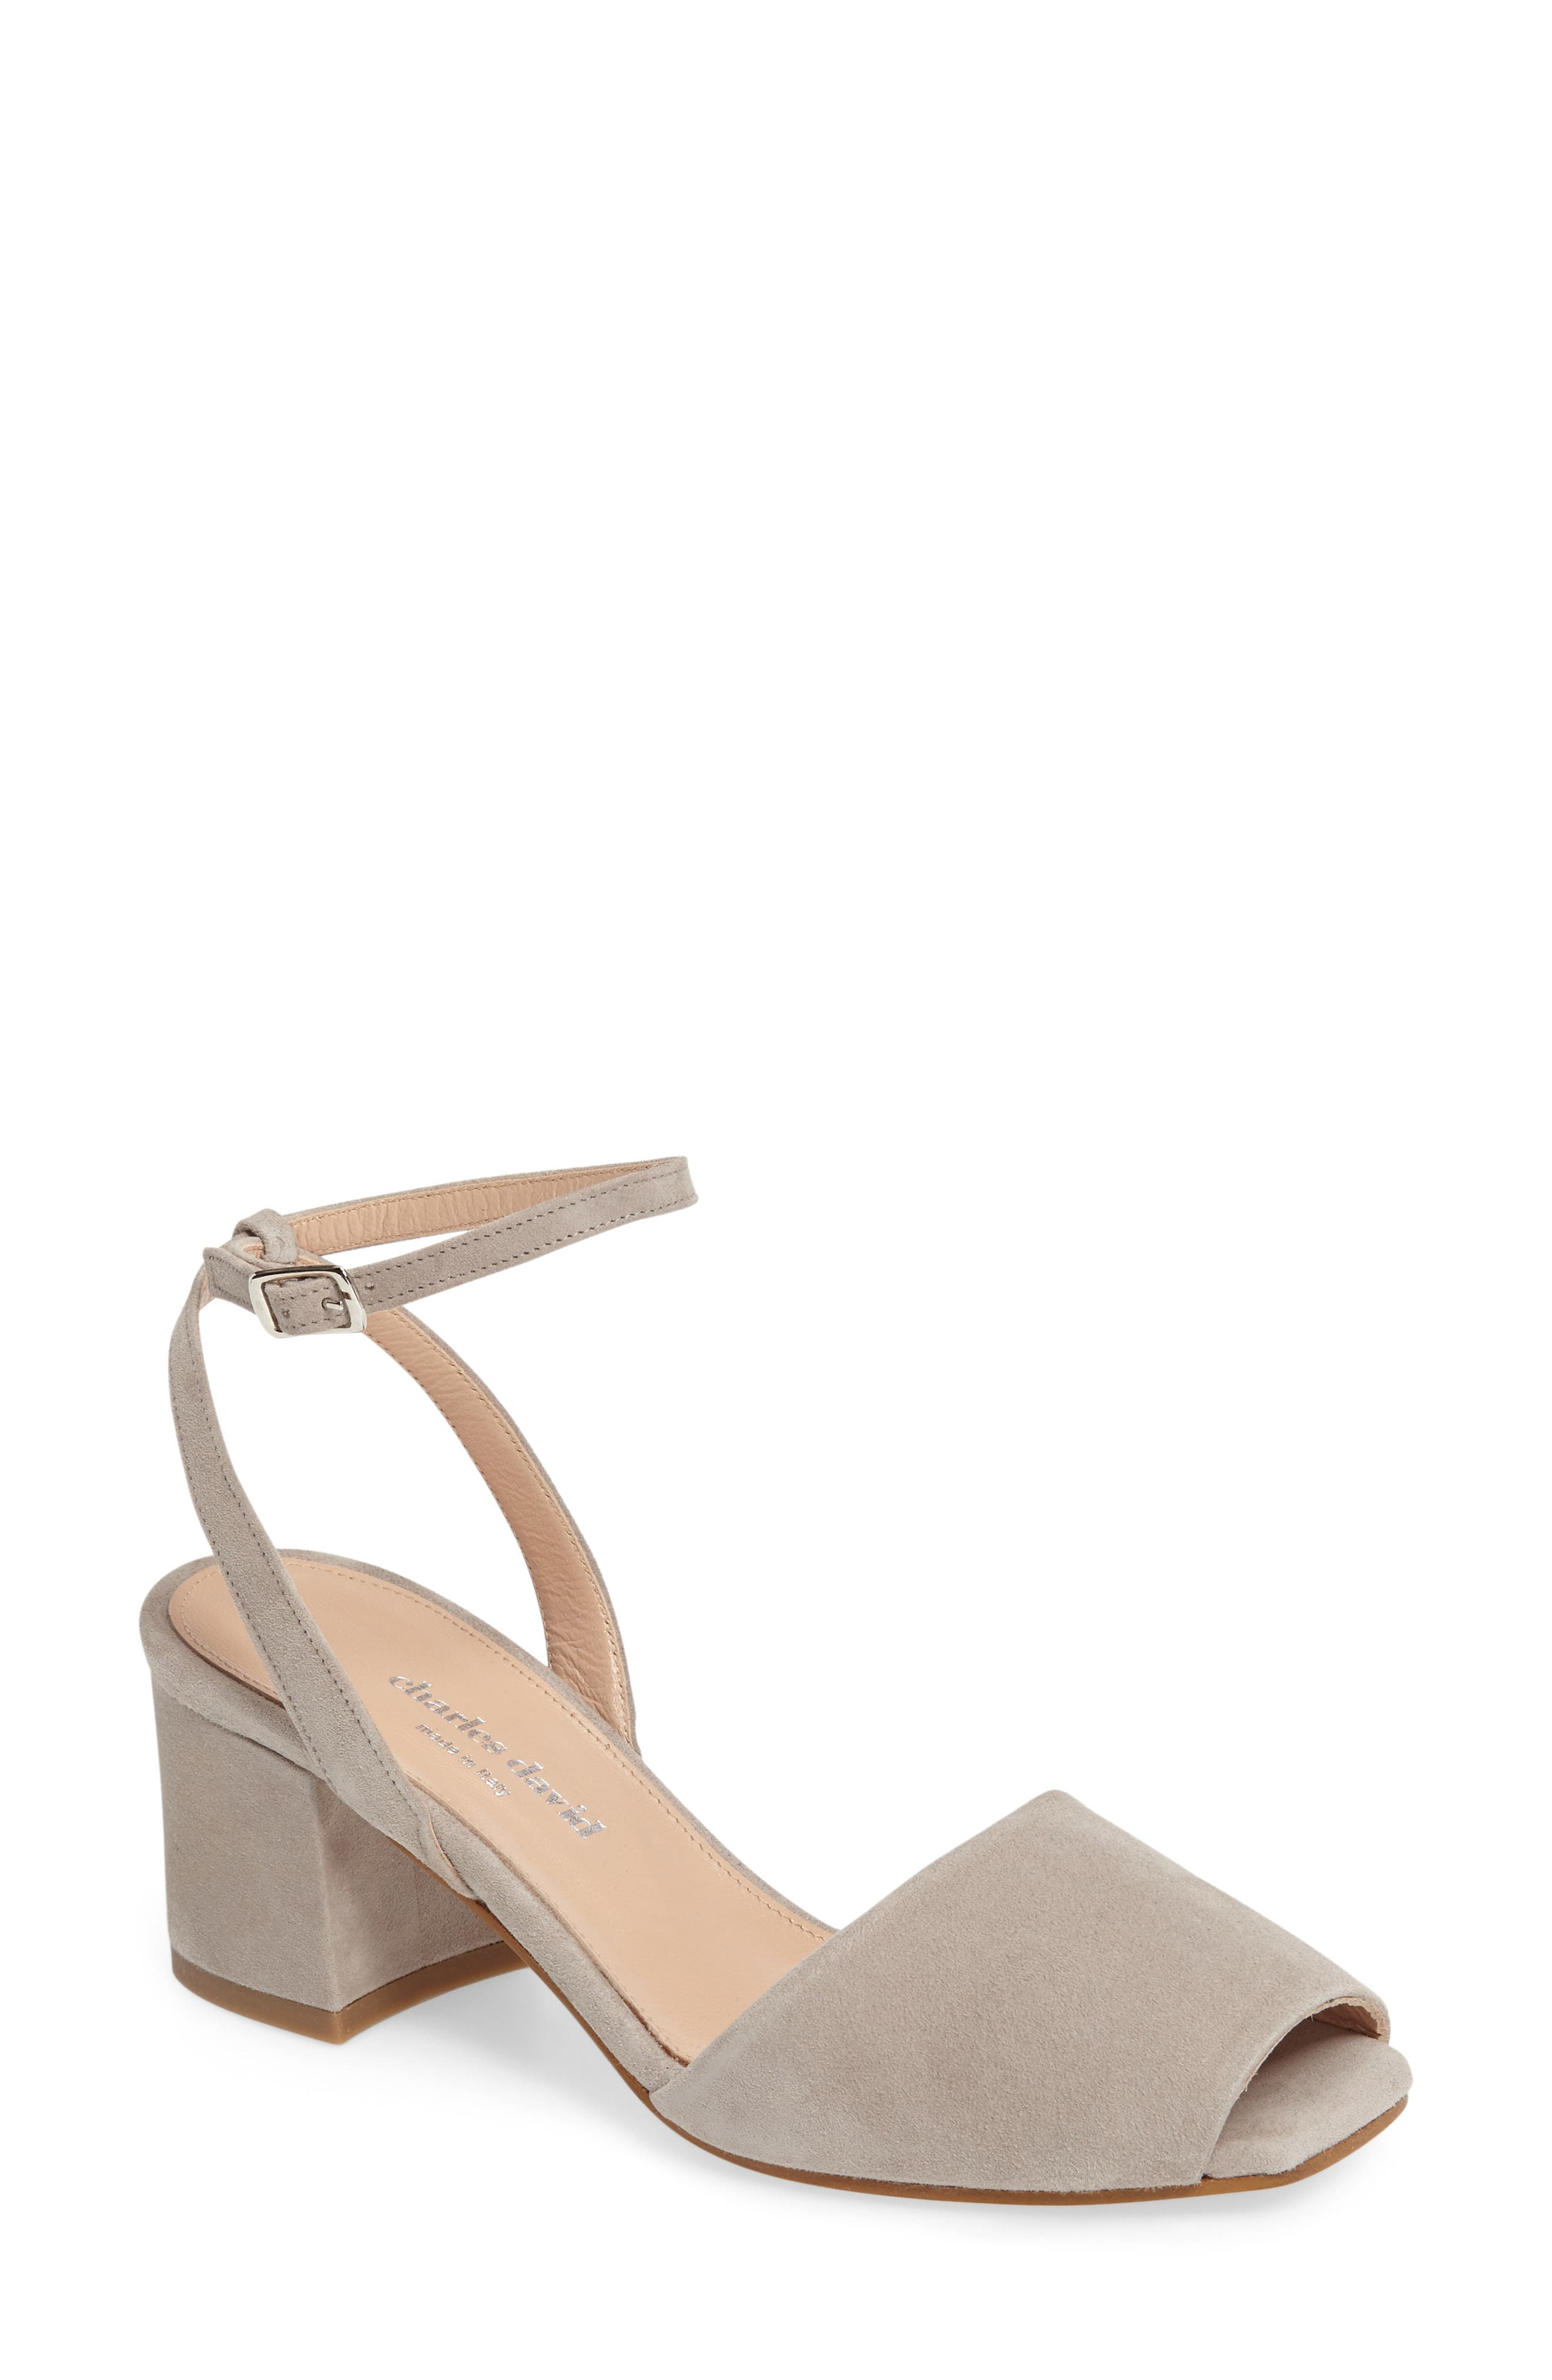 Alternate Image 1 Selected - Charles David Cube Sandal (Women)